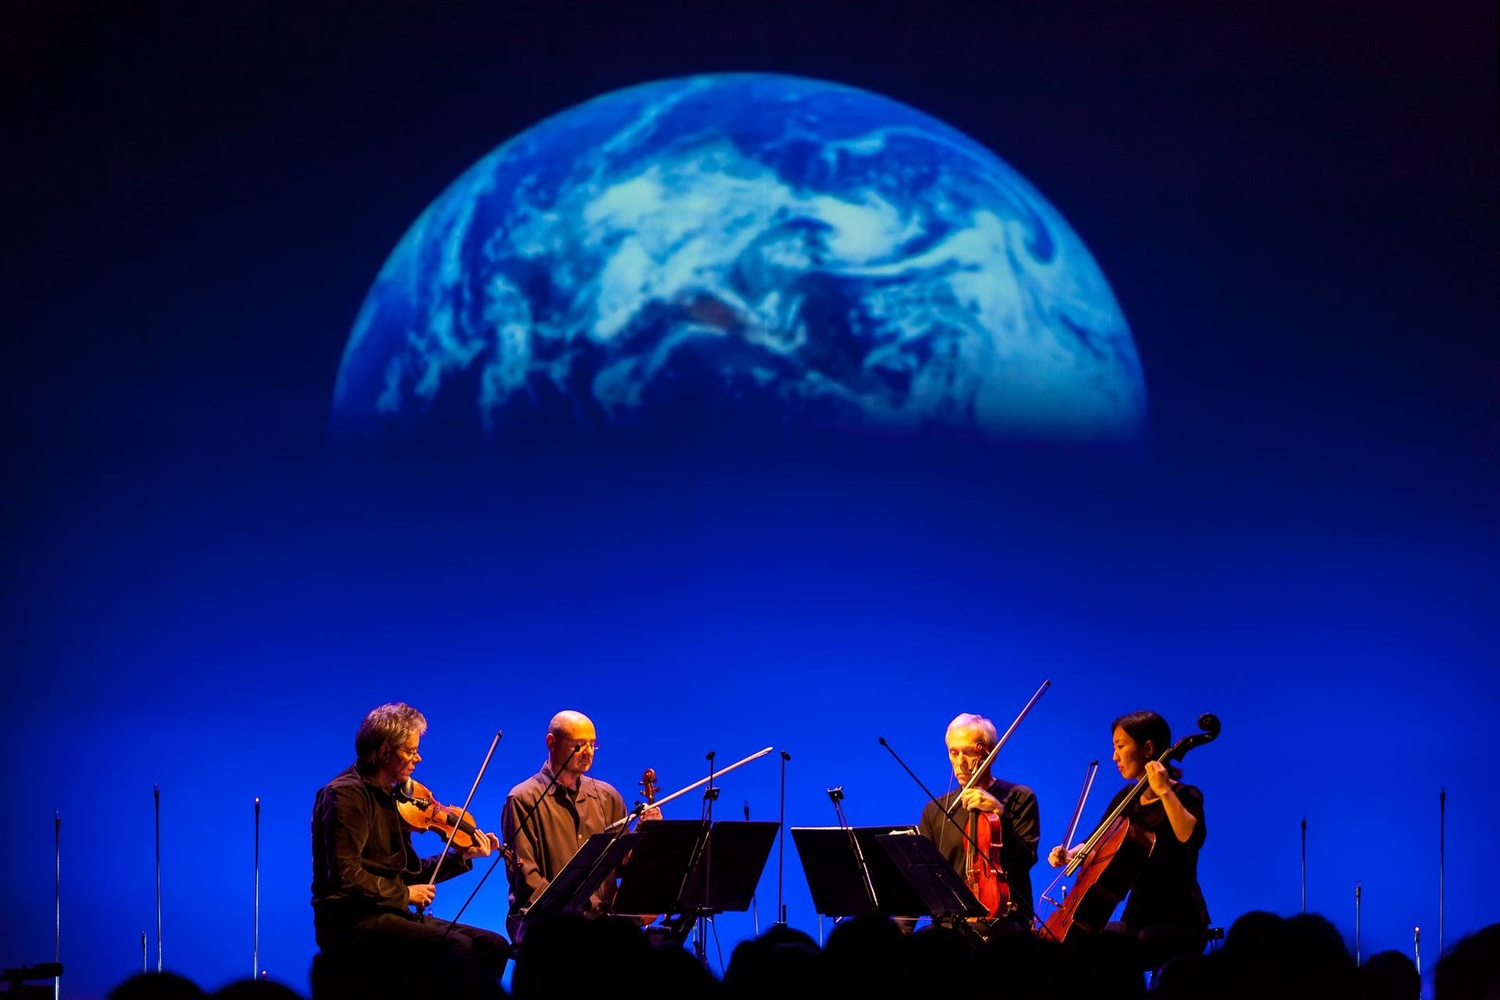 The Kronos Quartet performing in Krakow, Poland in 2014. Photo: Wojciech Wandzel